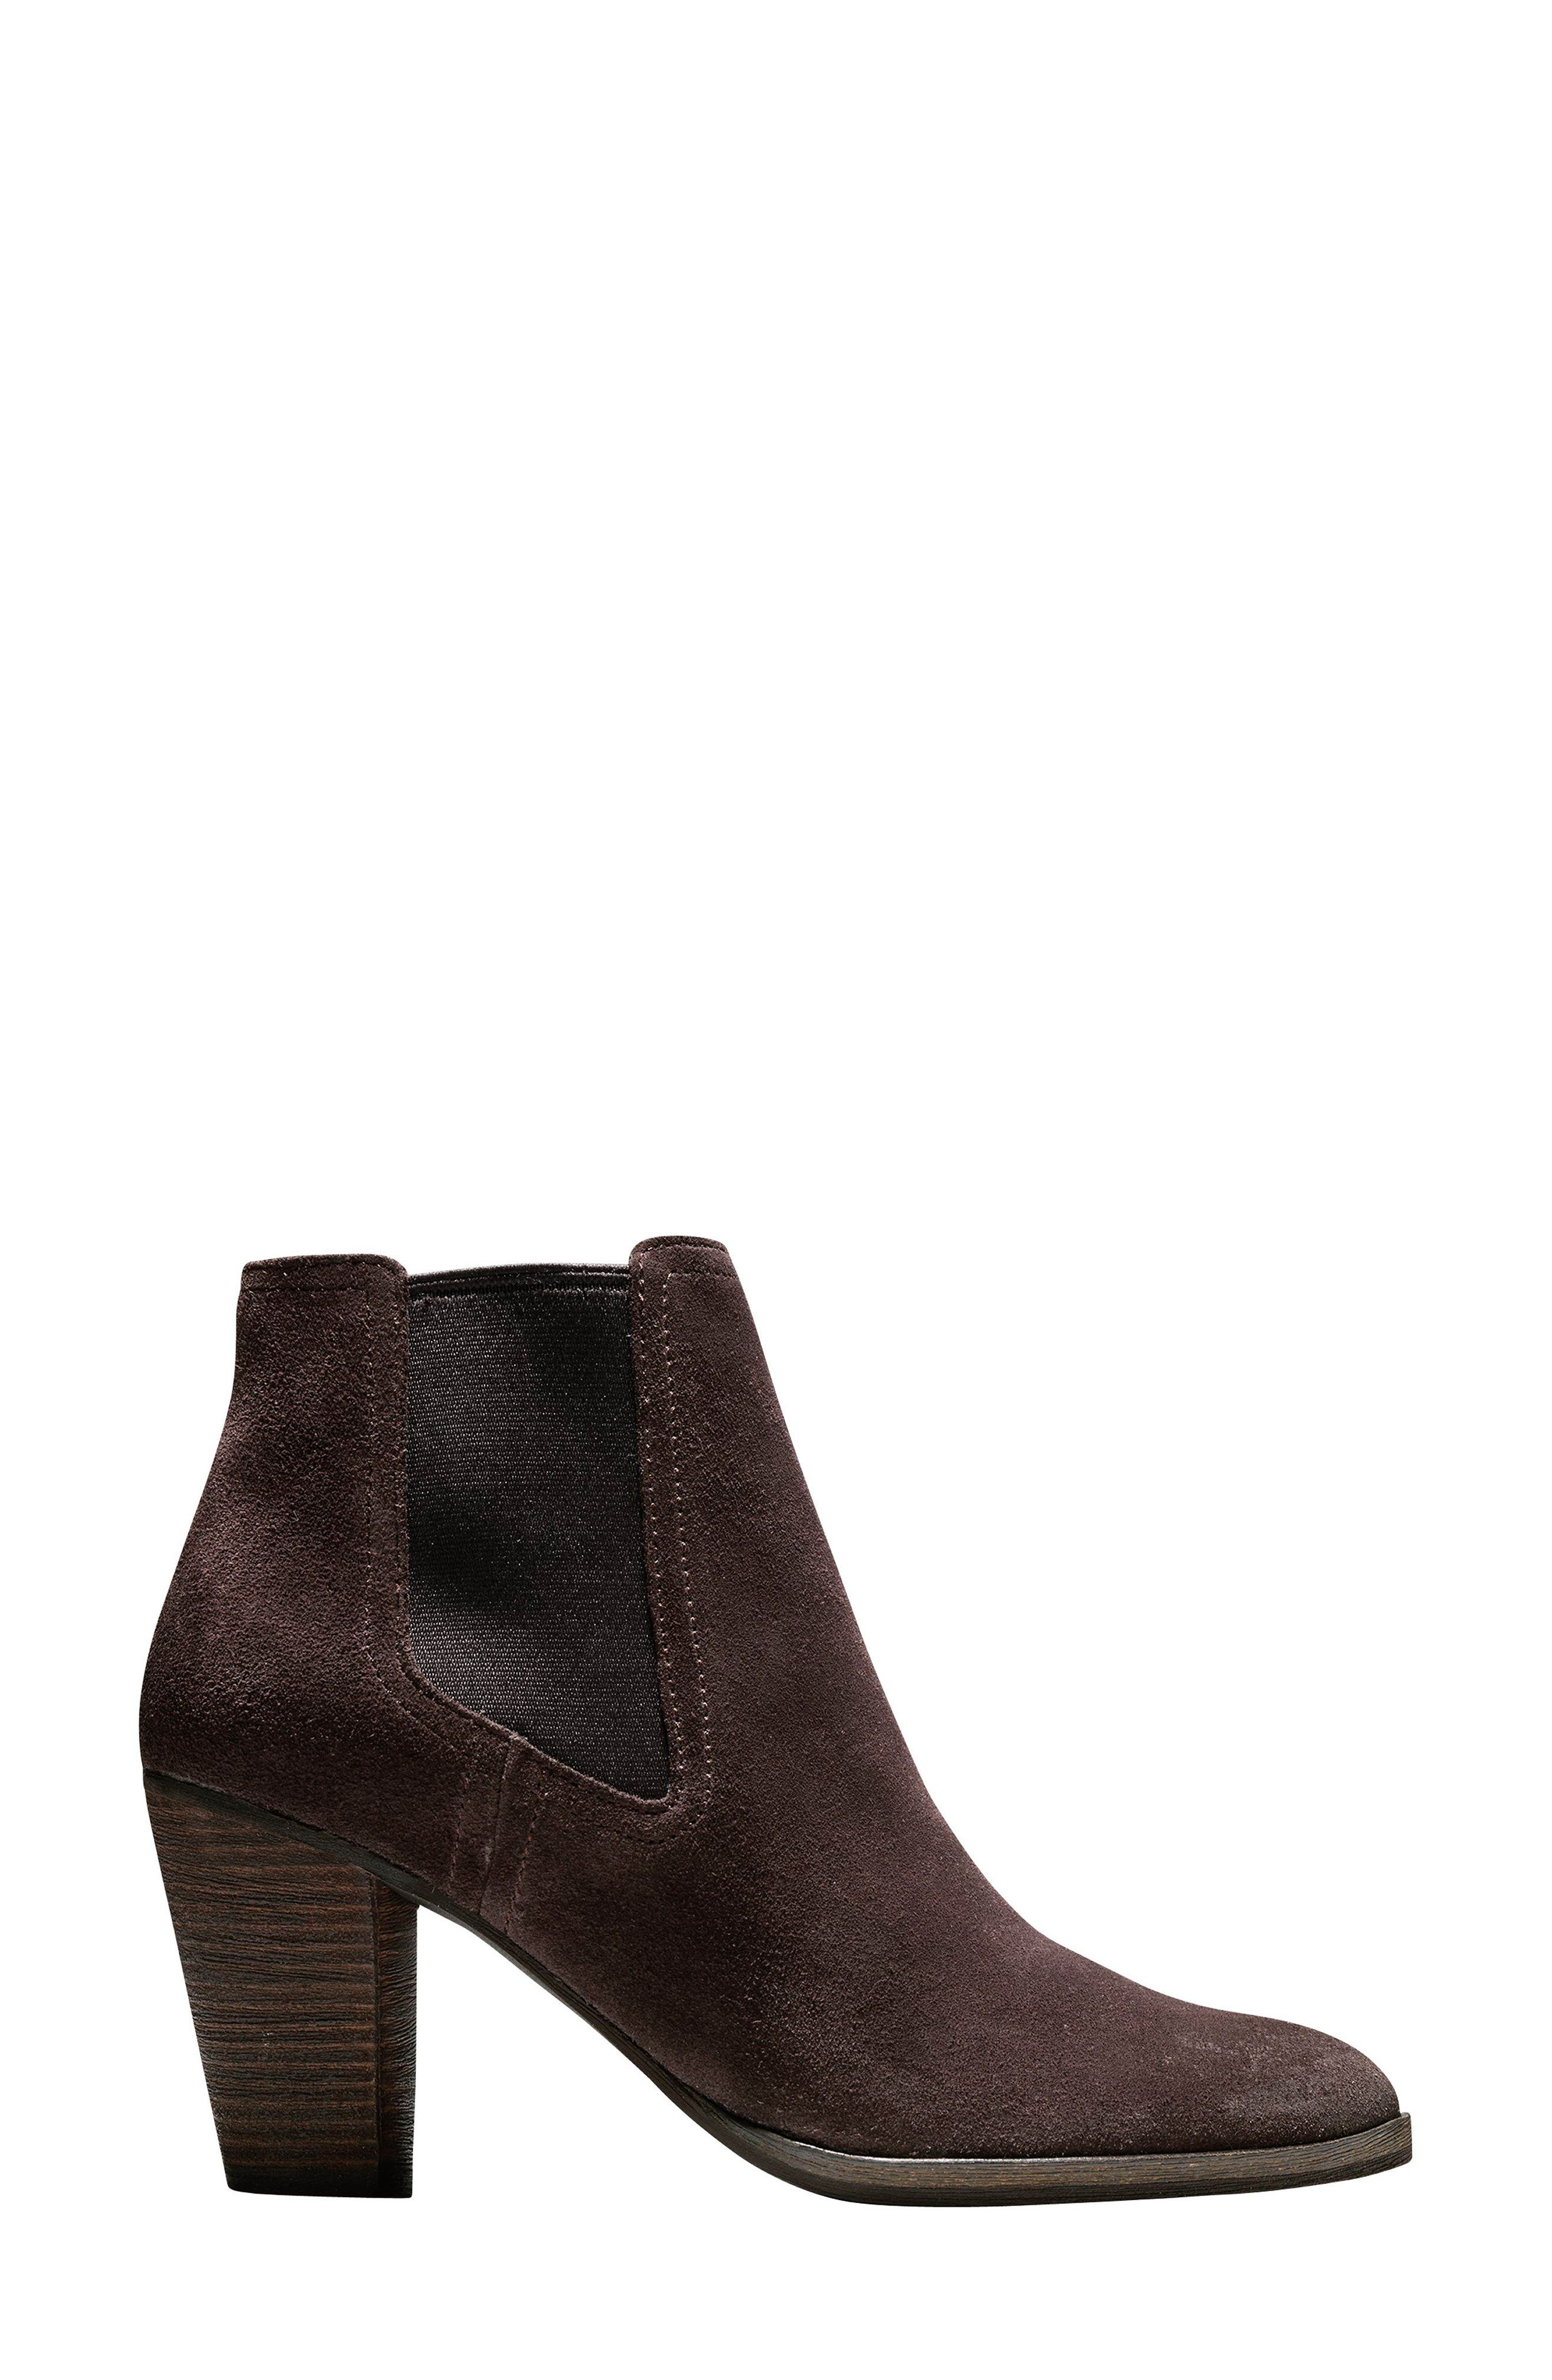 Hayes Chelsea Boot,                             Alternate thumbnail 3, color,                             Java Suede